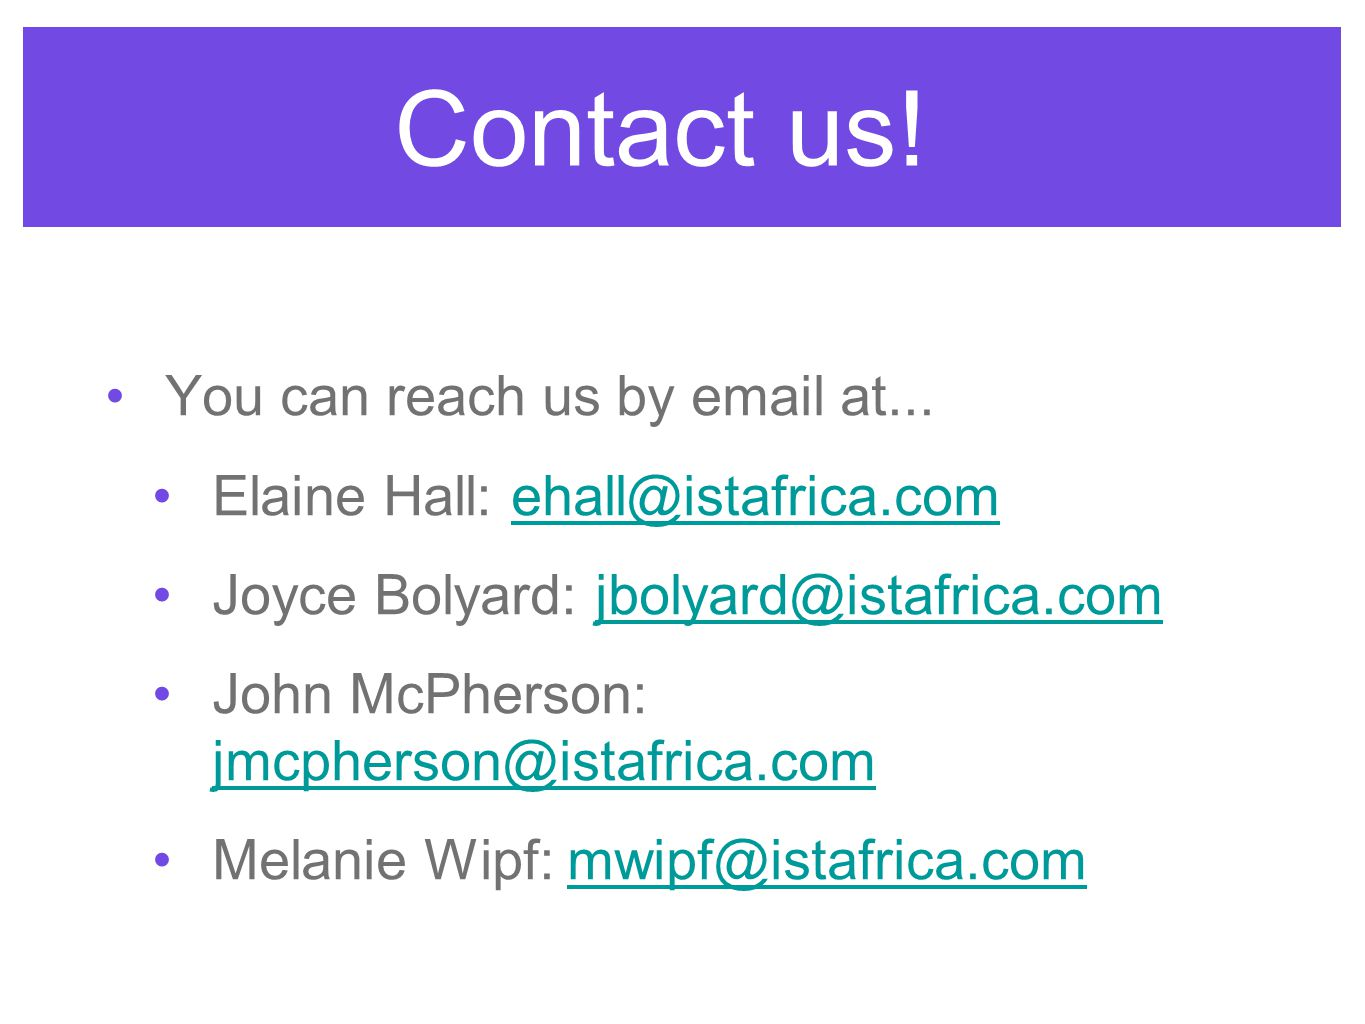 Contact us. You can reach us by email at...